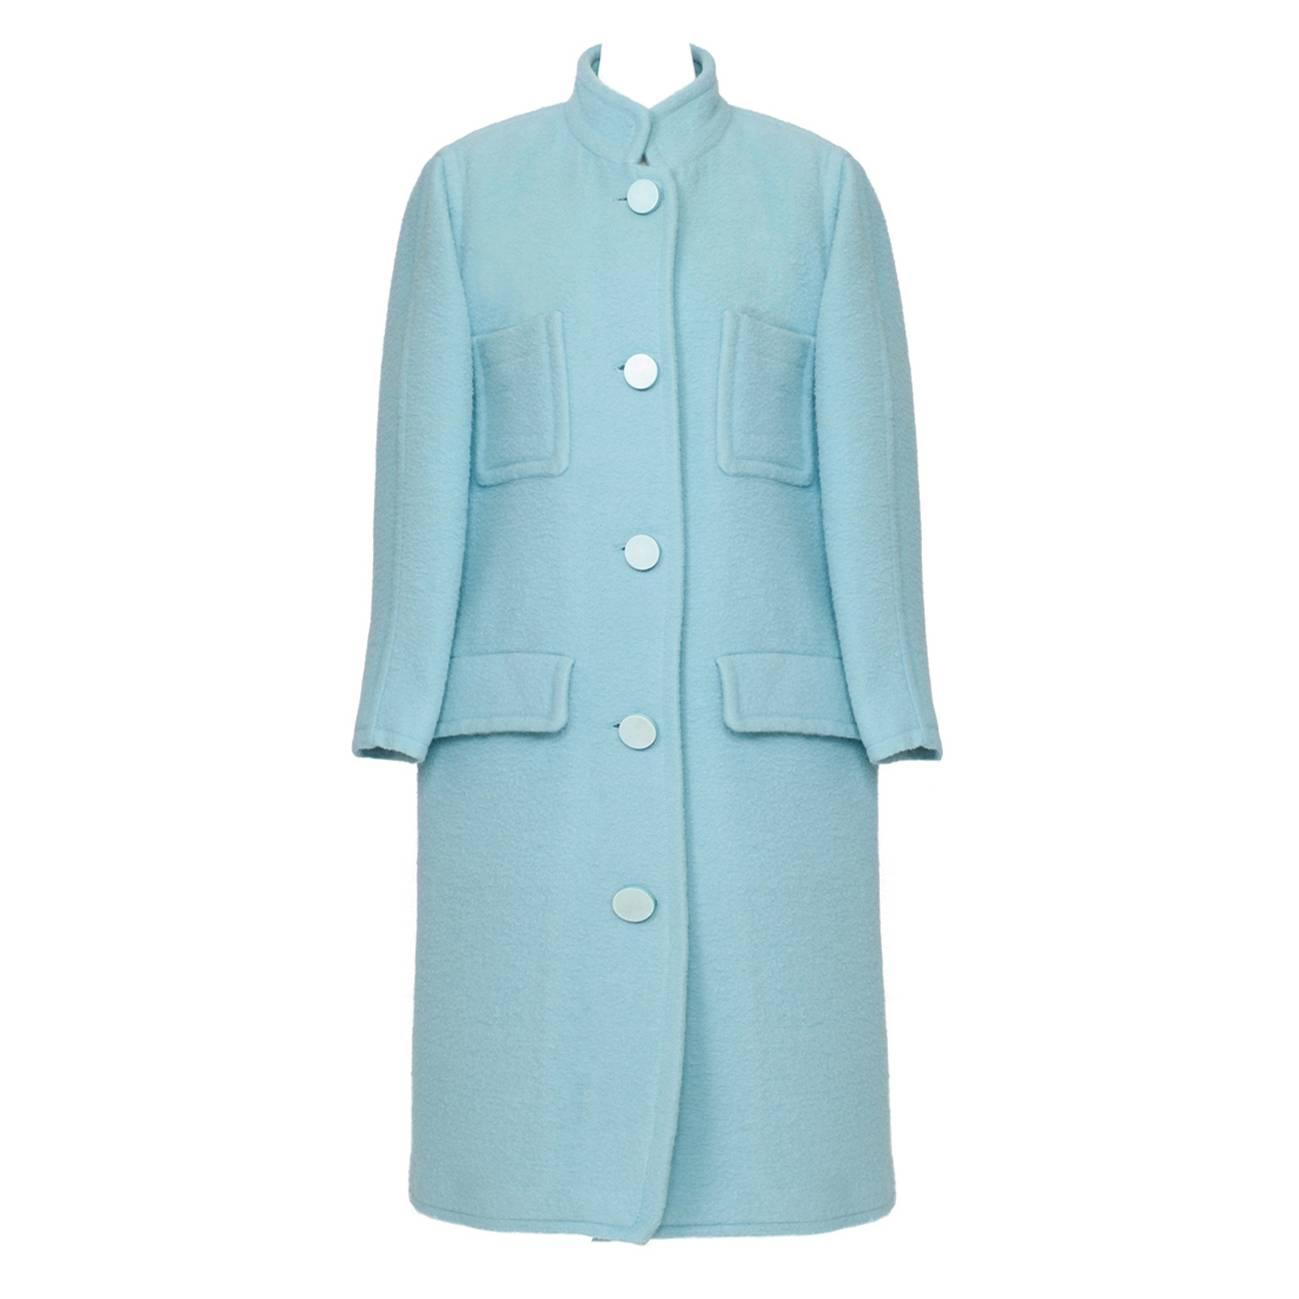 For Sale on 1stdibs - Courreges Baby Blue Wool Coat from 's. This iconic coat featuring oversized patch pockets and sewn in pockets with flap with center front button closure.